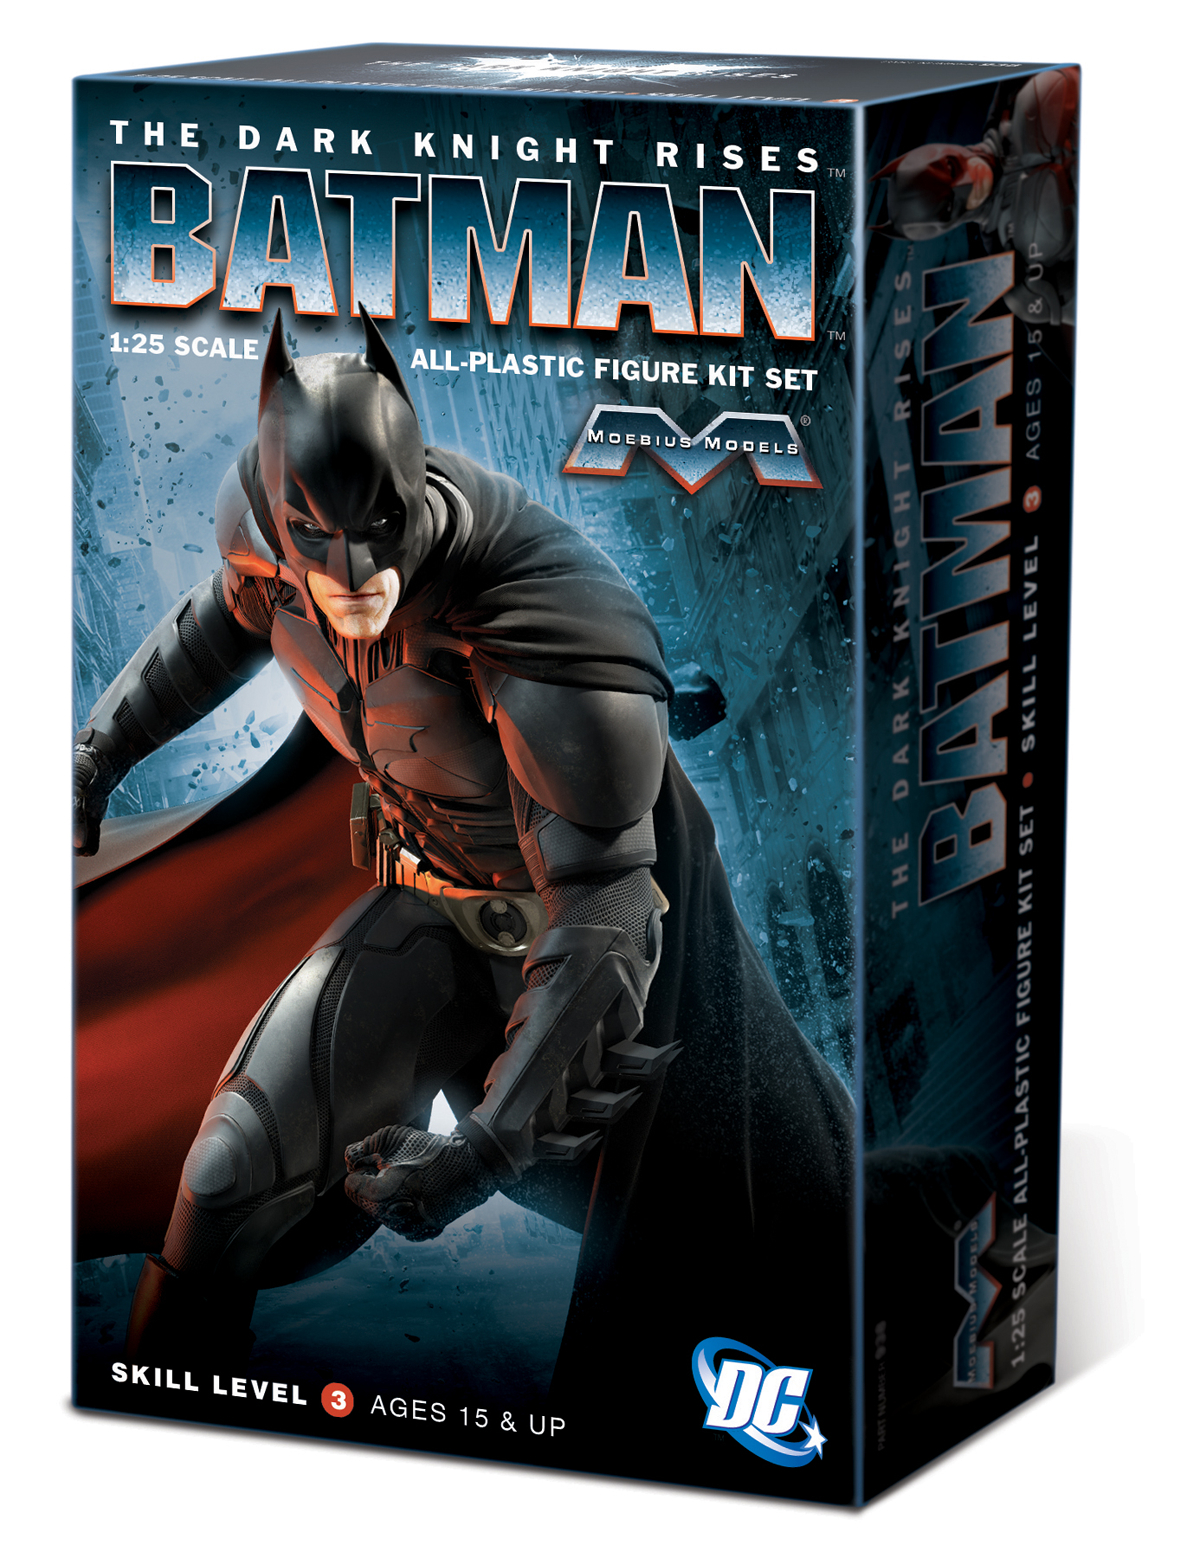 DARK KNIGHT 1/25 SCALE FIGURE SET